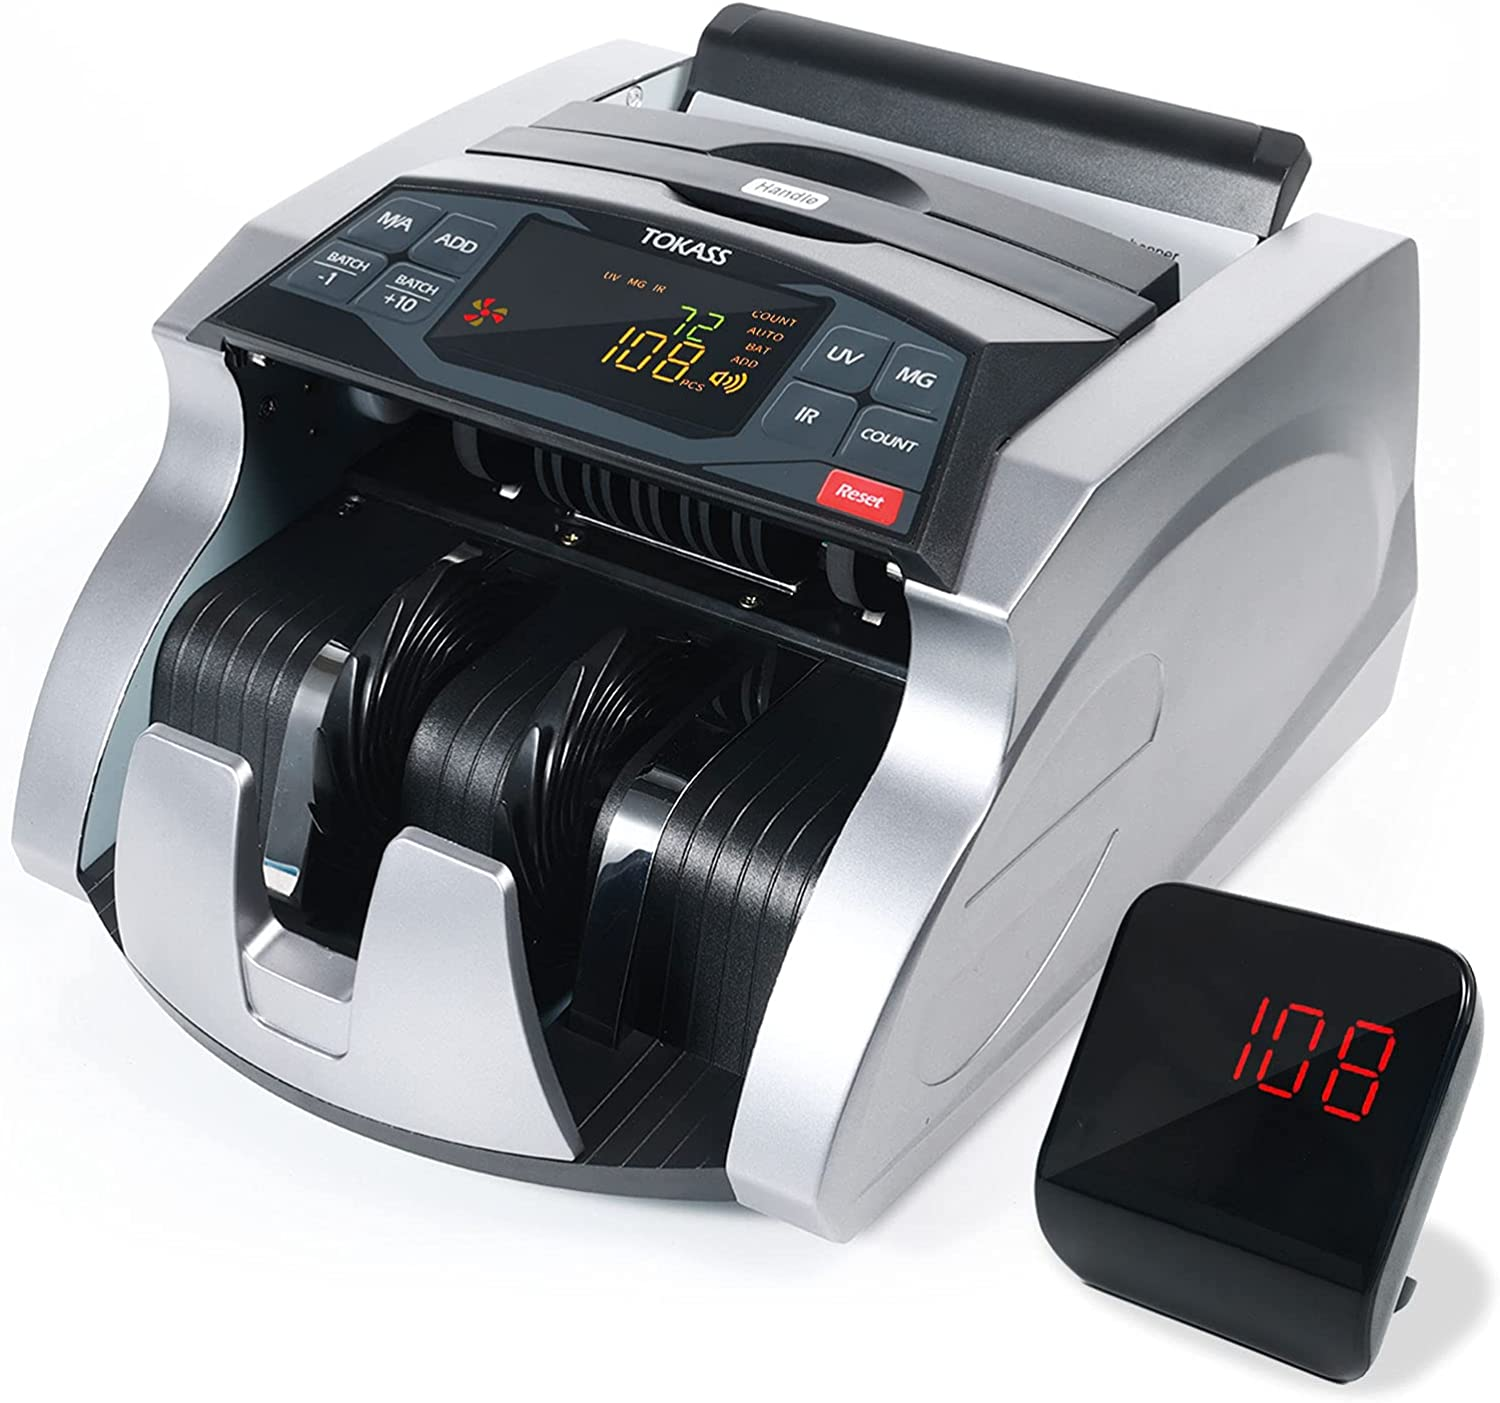 TOKASS Money Counter with excellence UV MG C Counterfeit Bill Max 63% OFF Detection IR